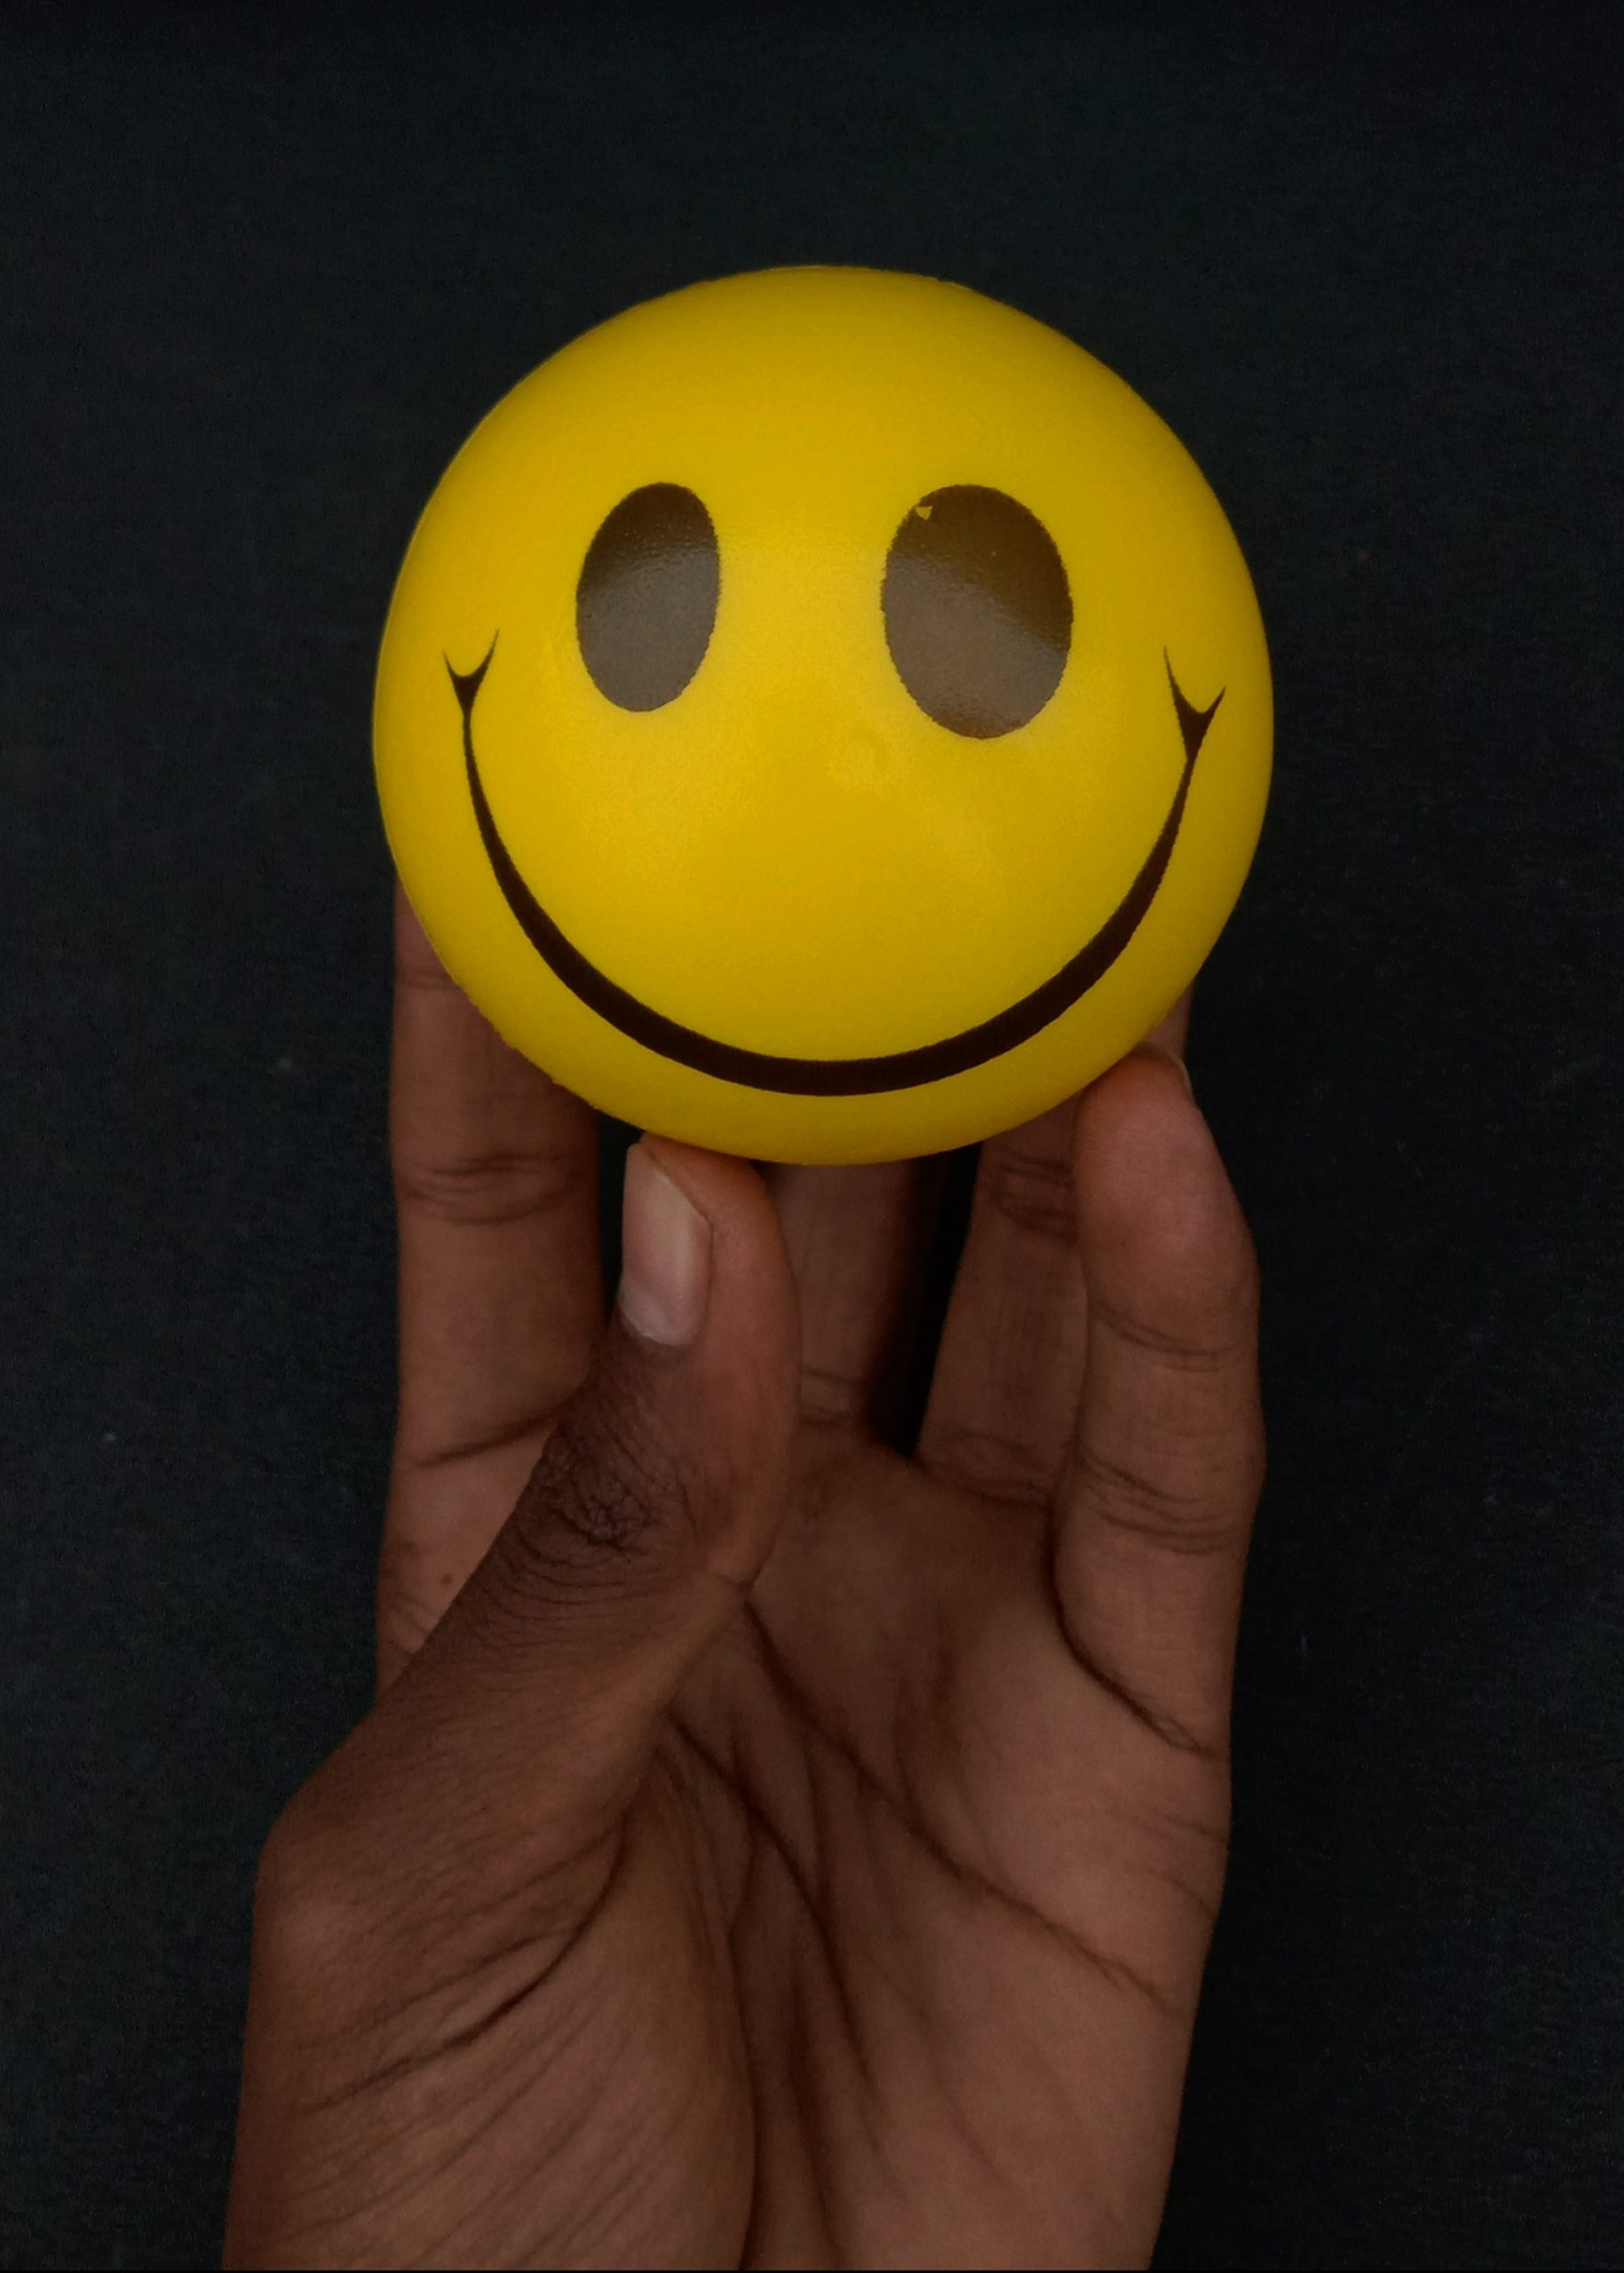 smiley ball in hand